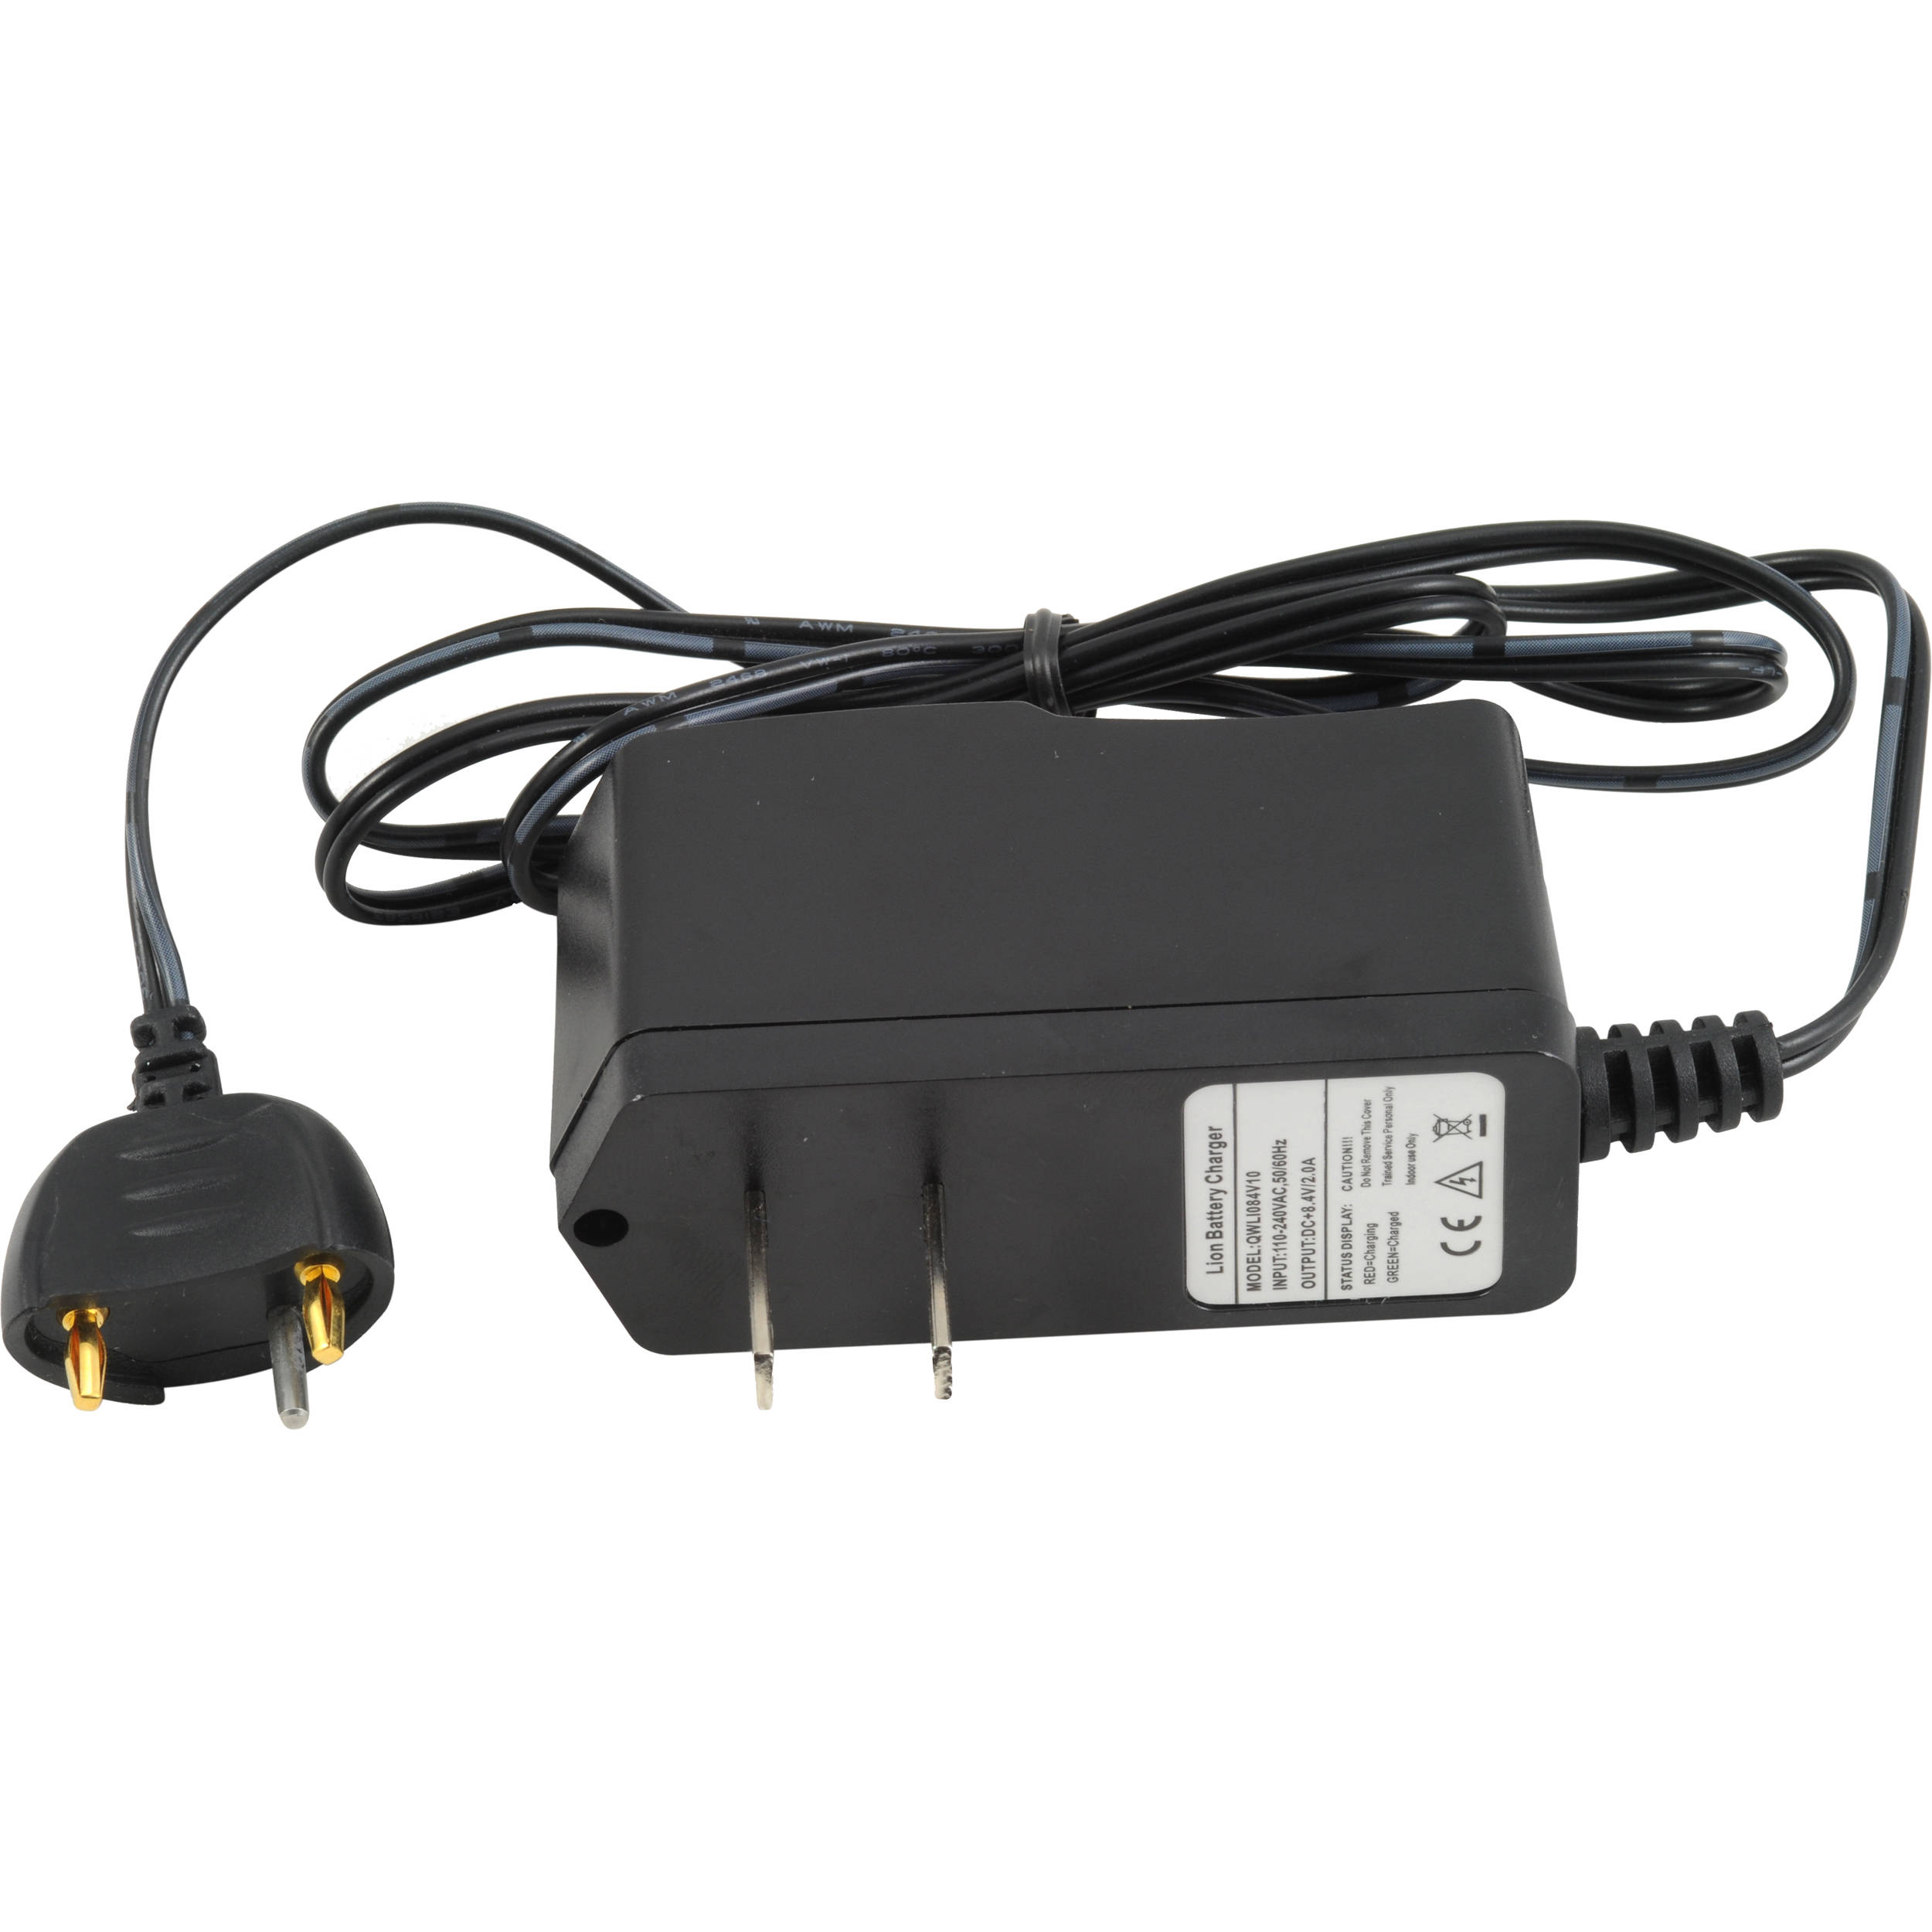 Light motion charger for select sola lights 800 0192 a b h for Select light